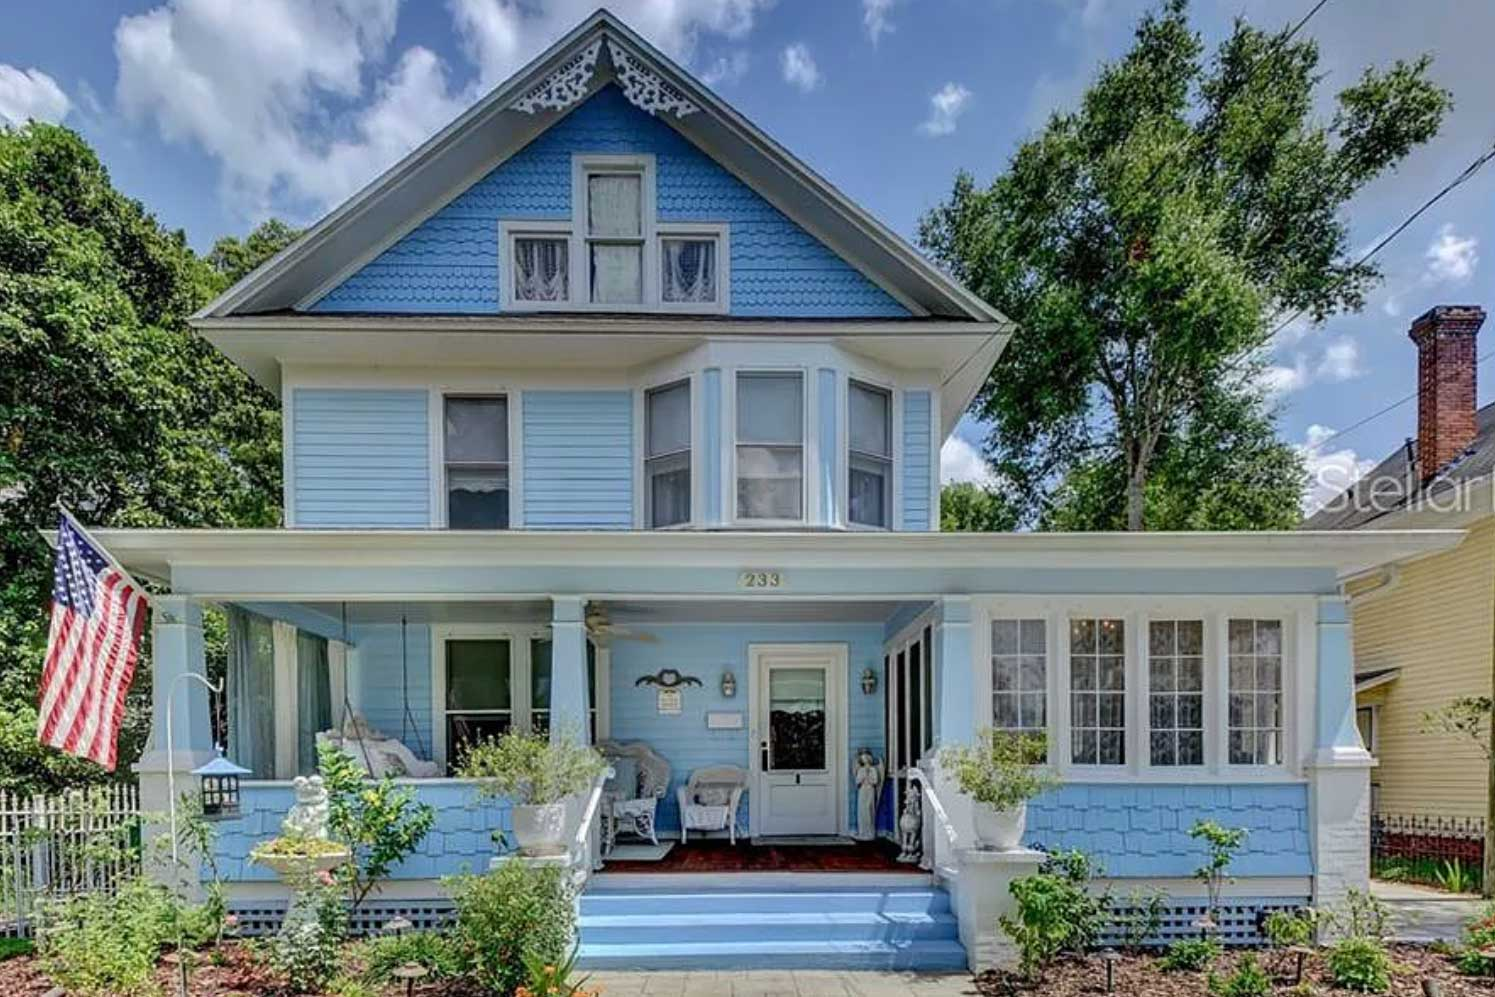 Beautiful Historical Houses For Sale in Central East Florida